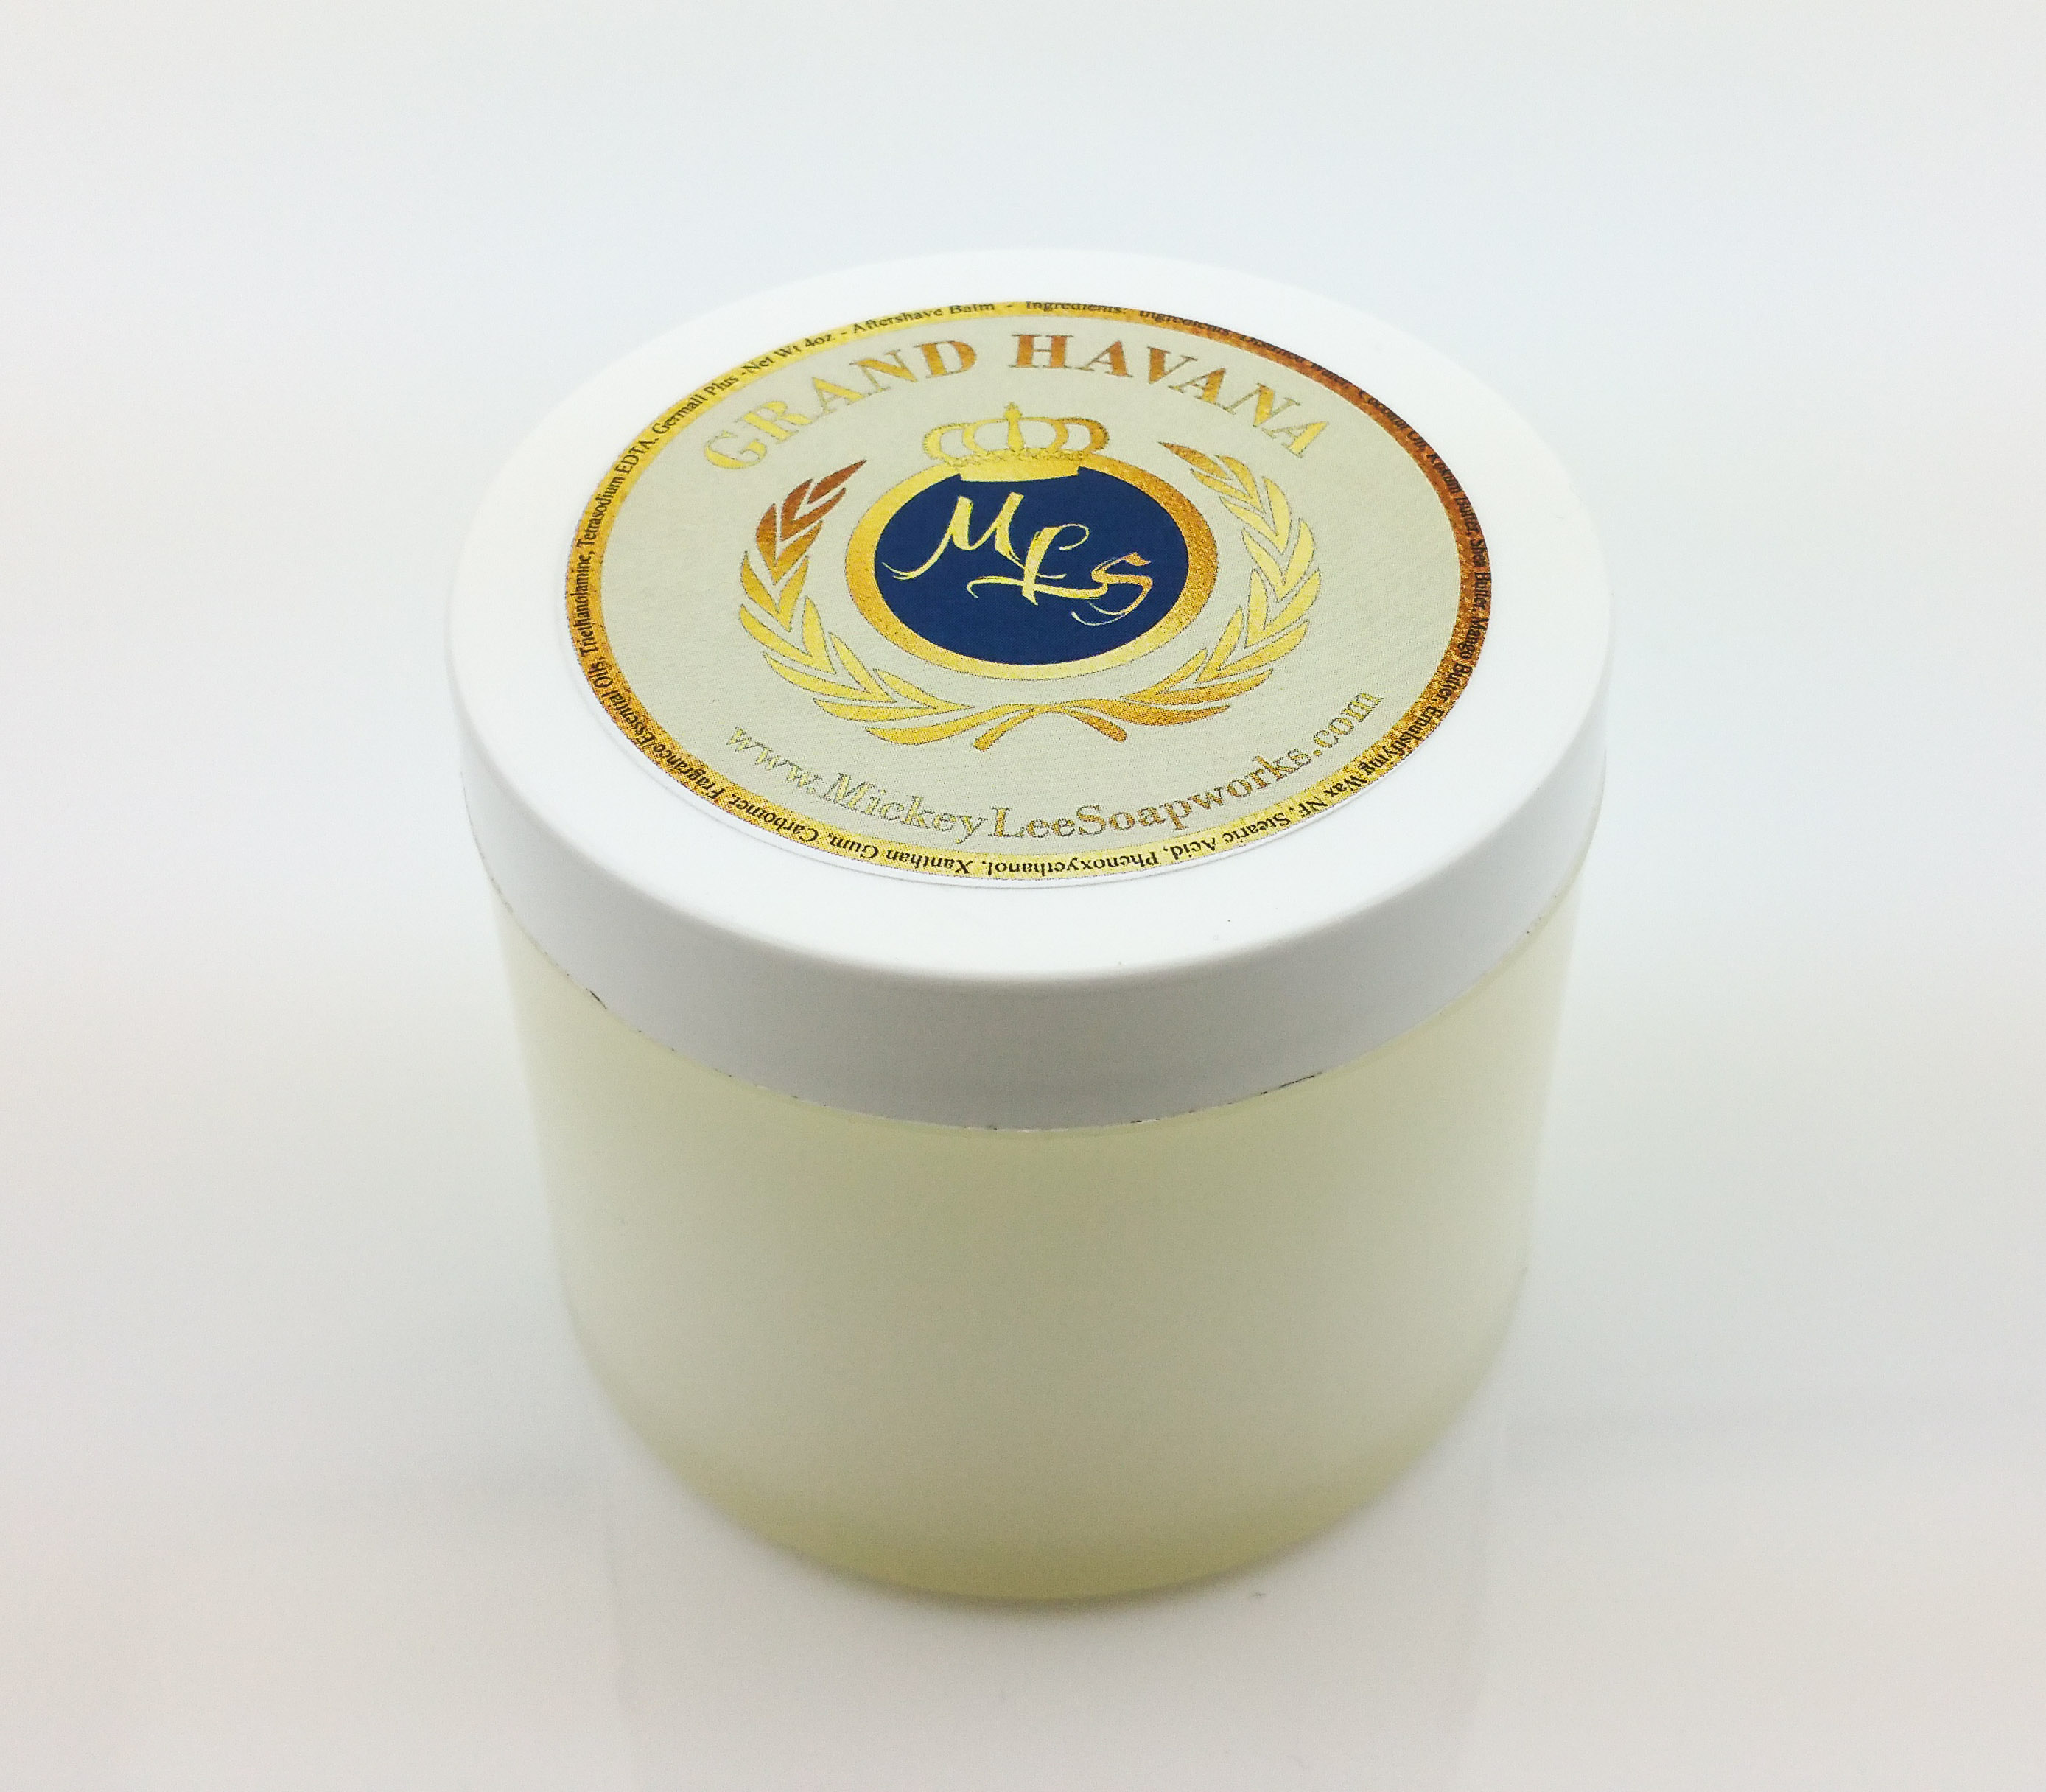 Mickey Lee Soapworks - Grand Havana - Balm image